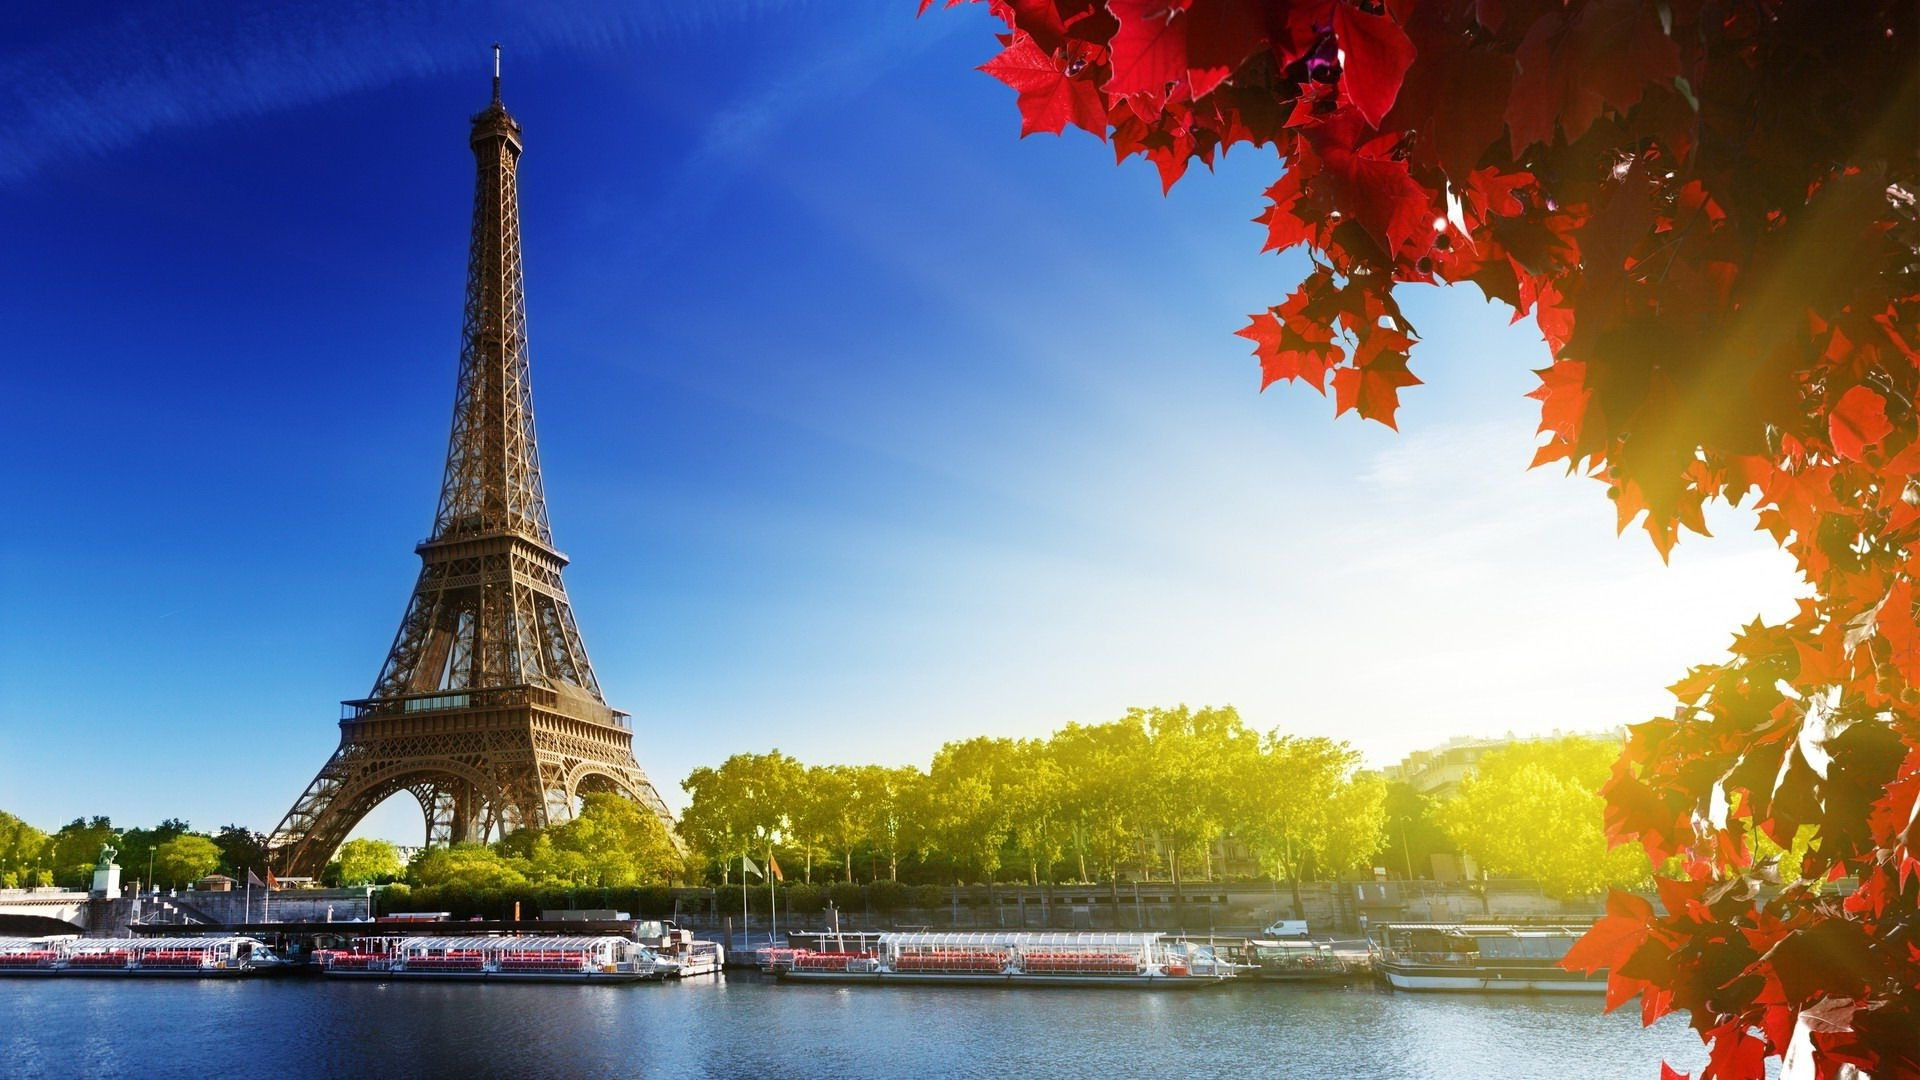 Paris France Wallpaper   Top Most Beautiful Countries of The World 1920x1080